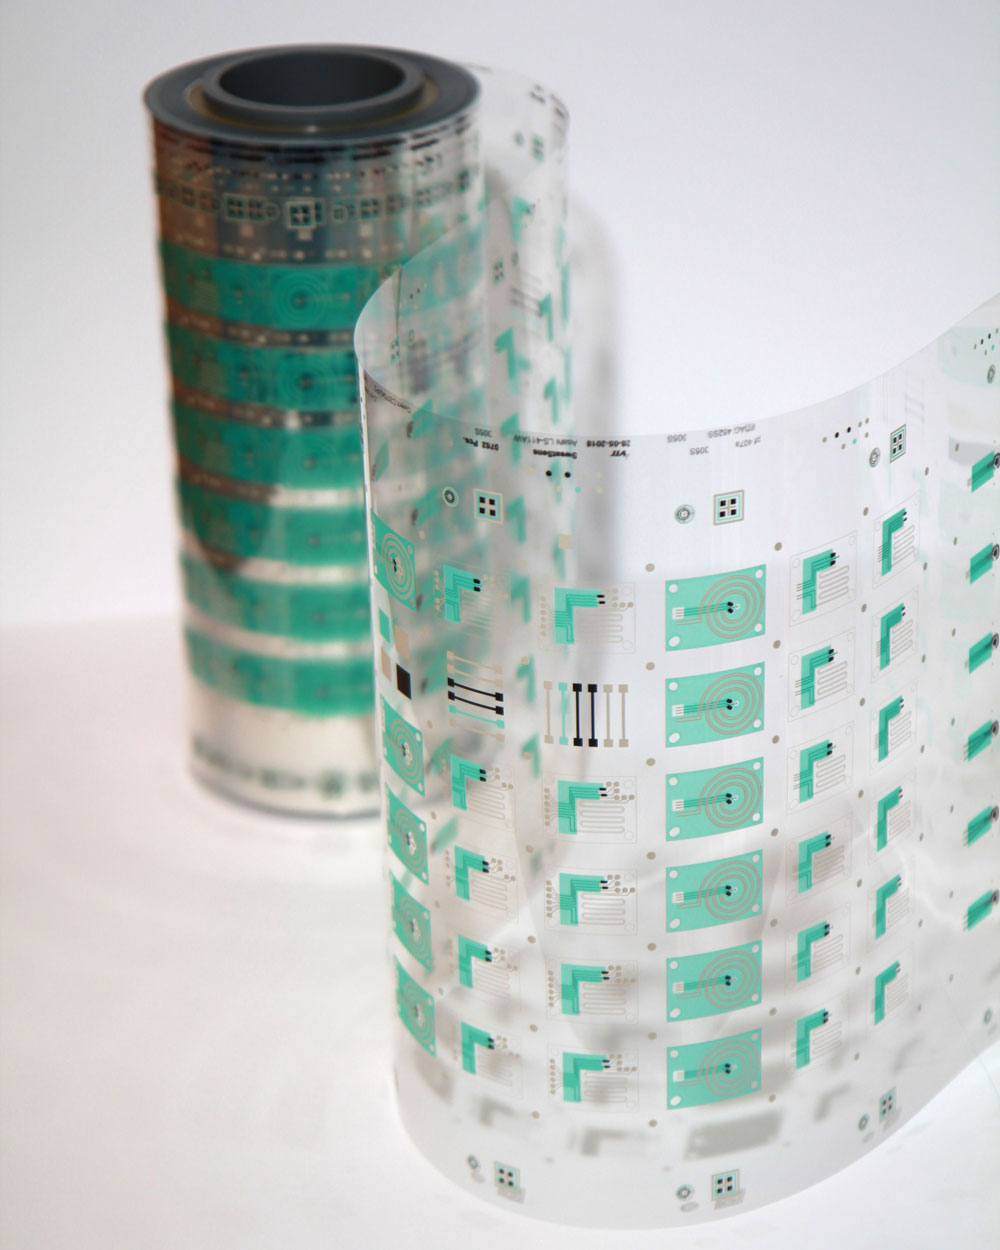 A photo of the sensors printed on a transparent sheet of plastic